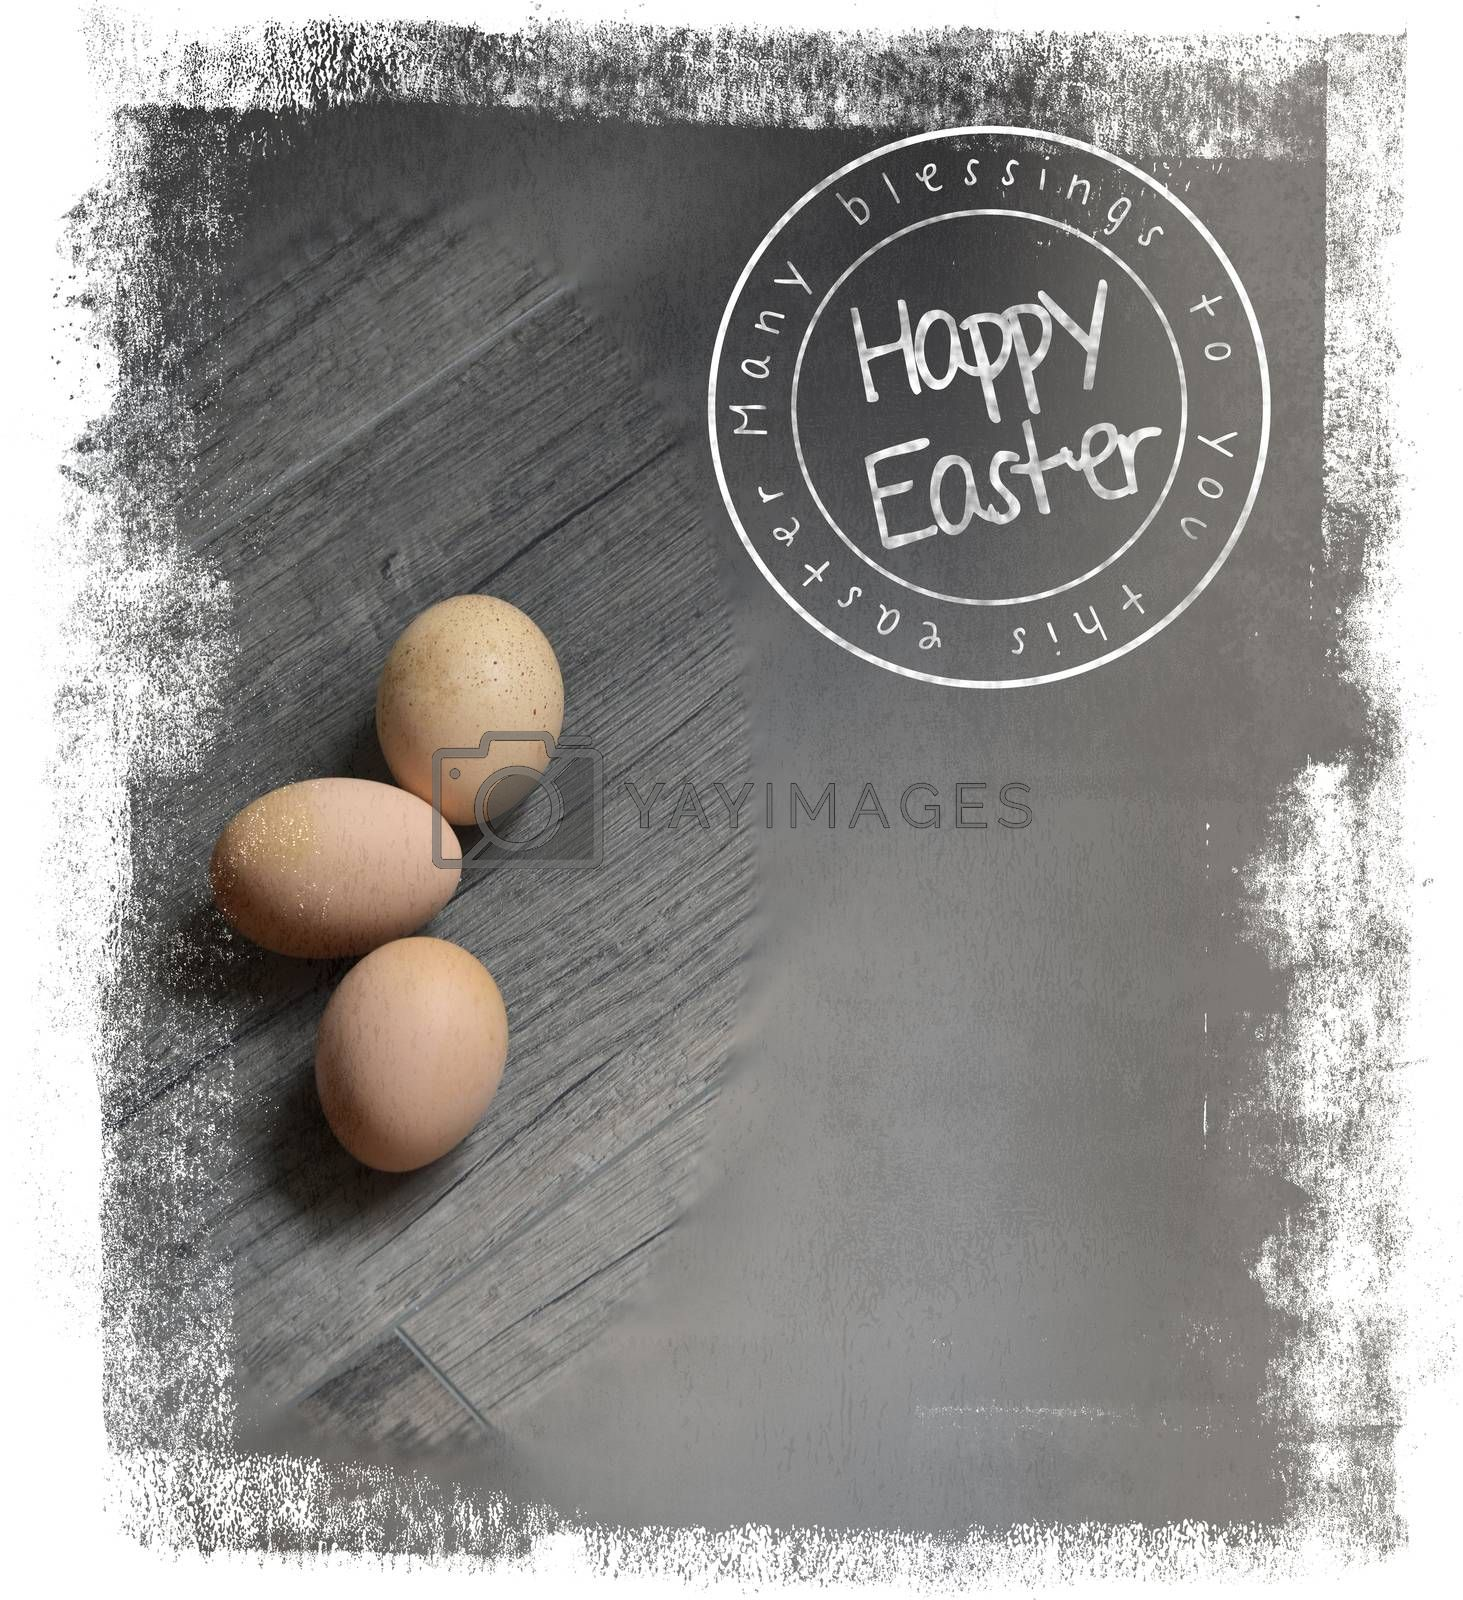 a modest postcard for Easter with eggs lying on a neutral background